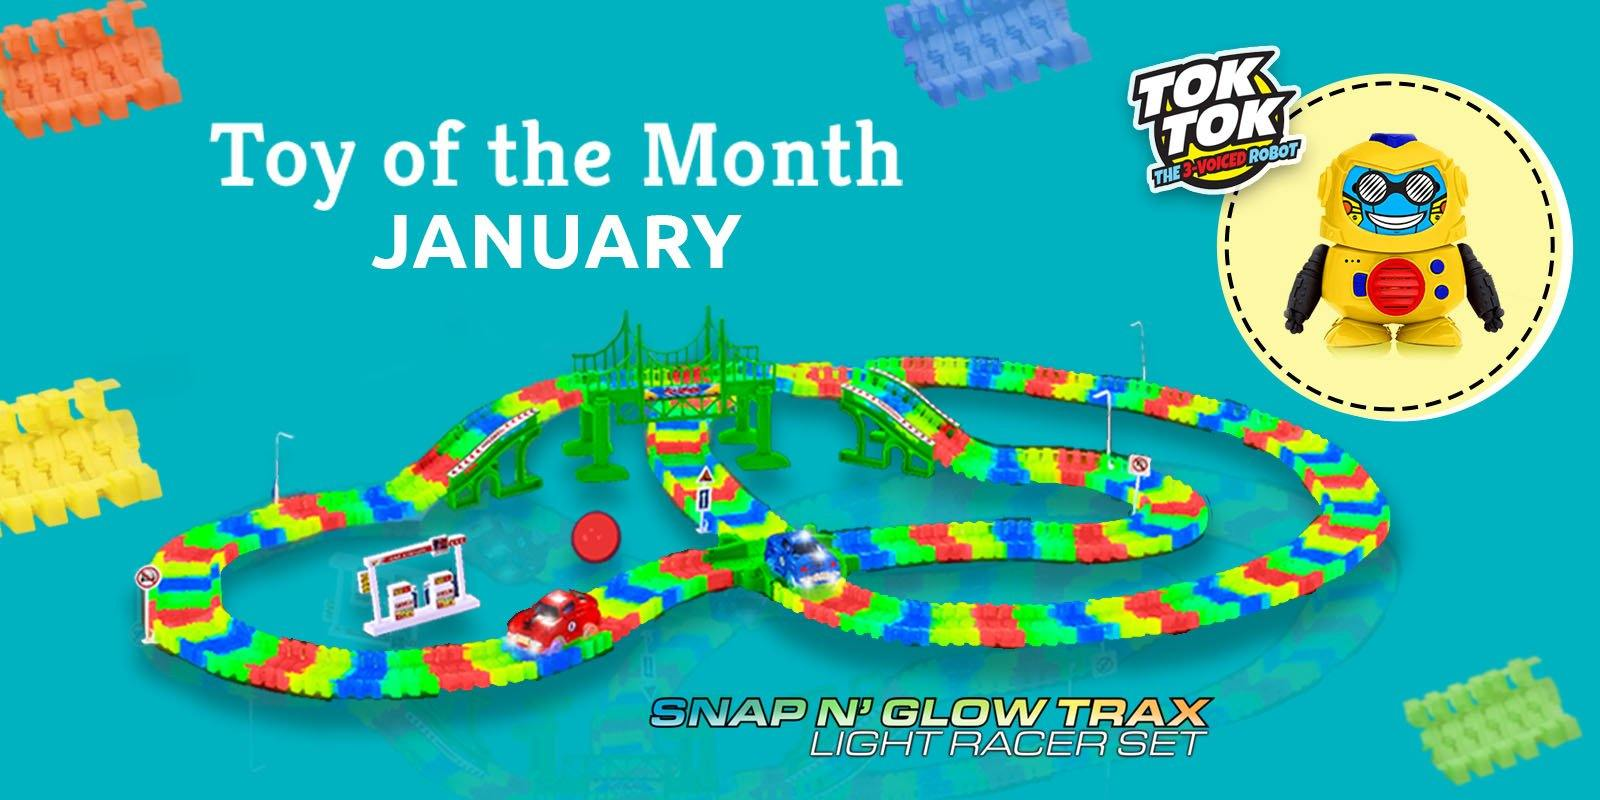 Toy of the Month Blog - January 2021